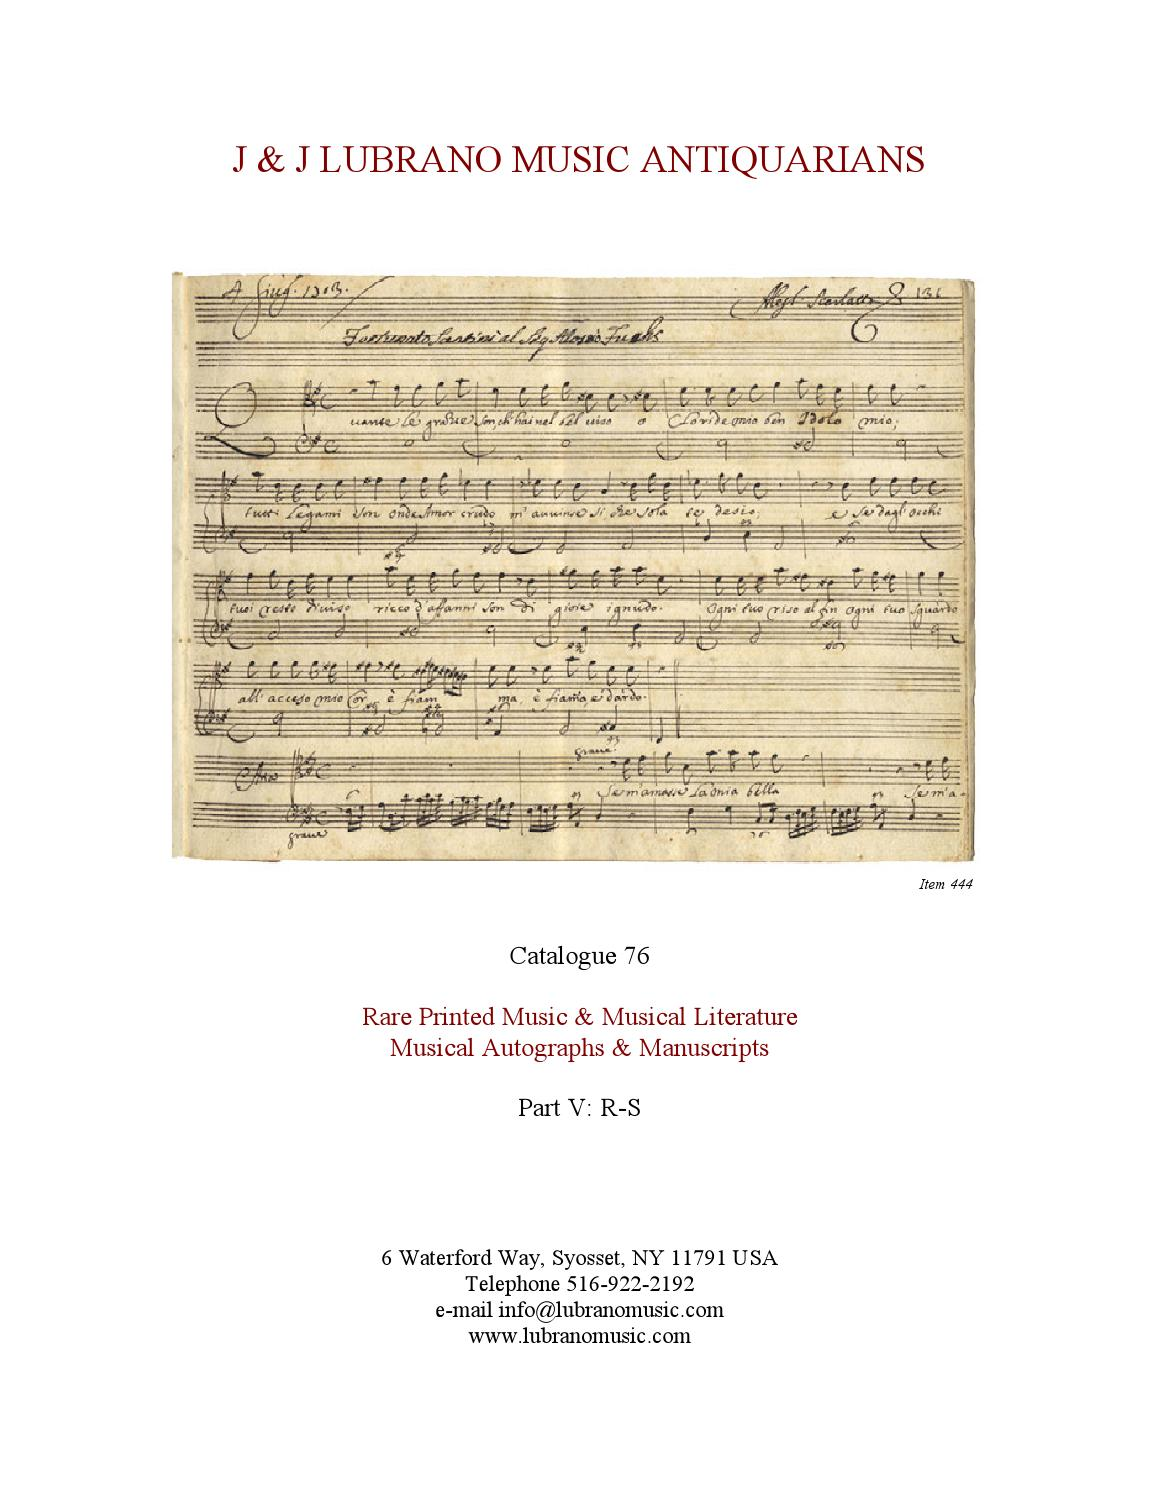 Camille Saint-Saens 1835-1921 The Dramatic Works A Thematic Catalogue of his Complete Works Volume 2